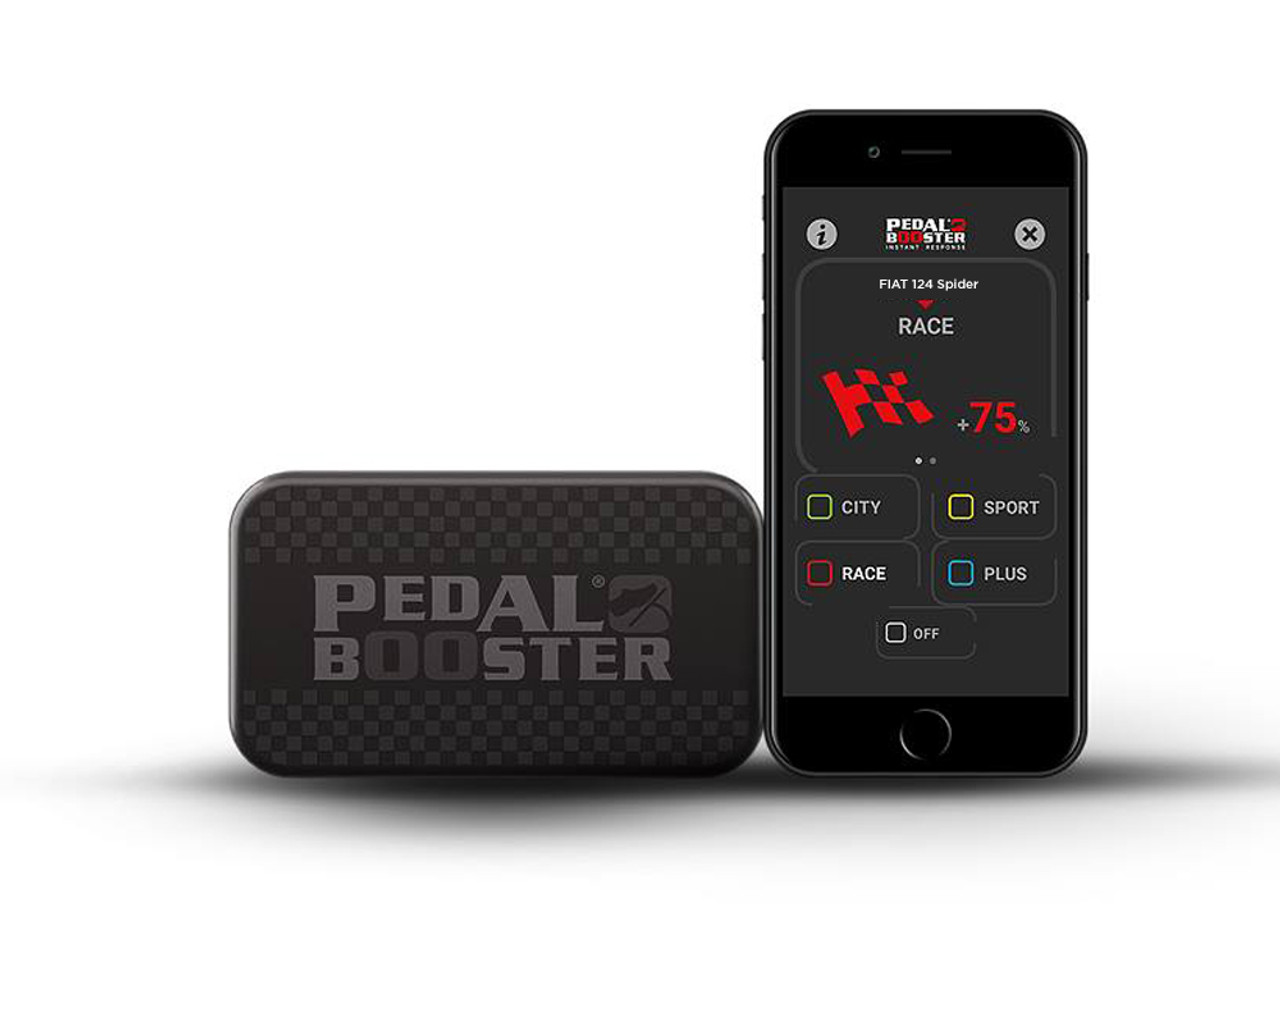 Auto Ricambi 2017-on 124 Spider Bluetooth Pedalbooster - Auto Ricambi by Seletron FIAT 124 Spider Parts